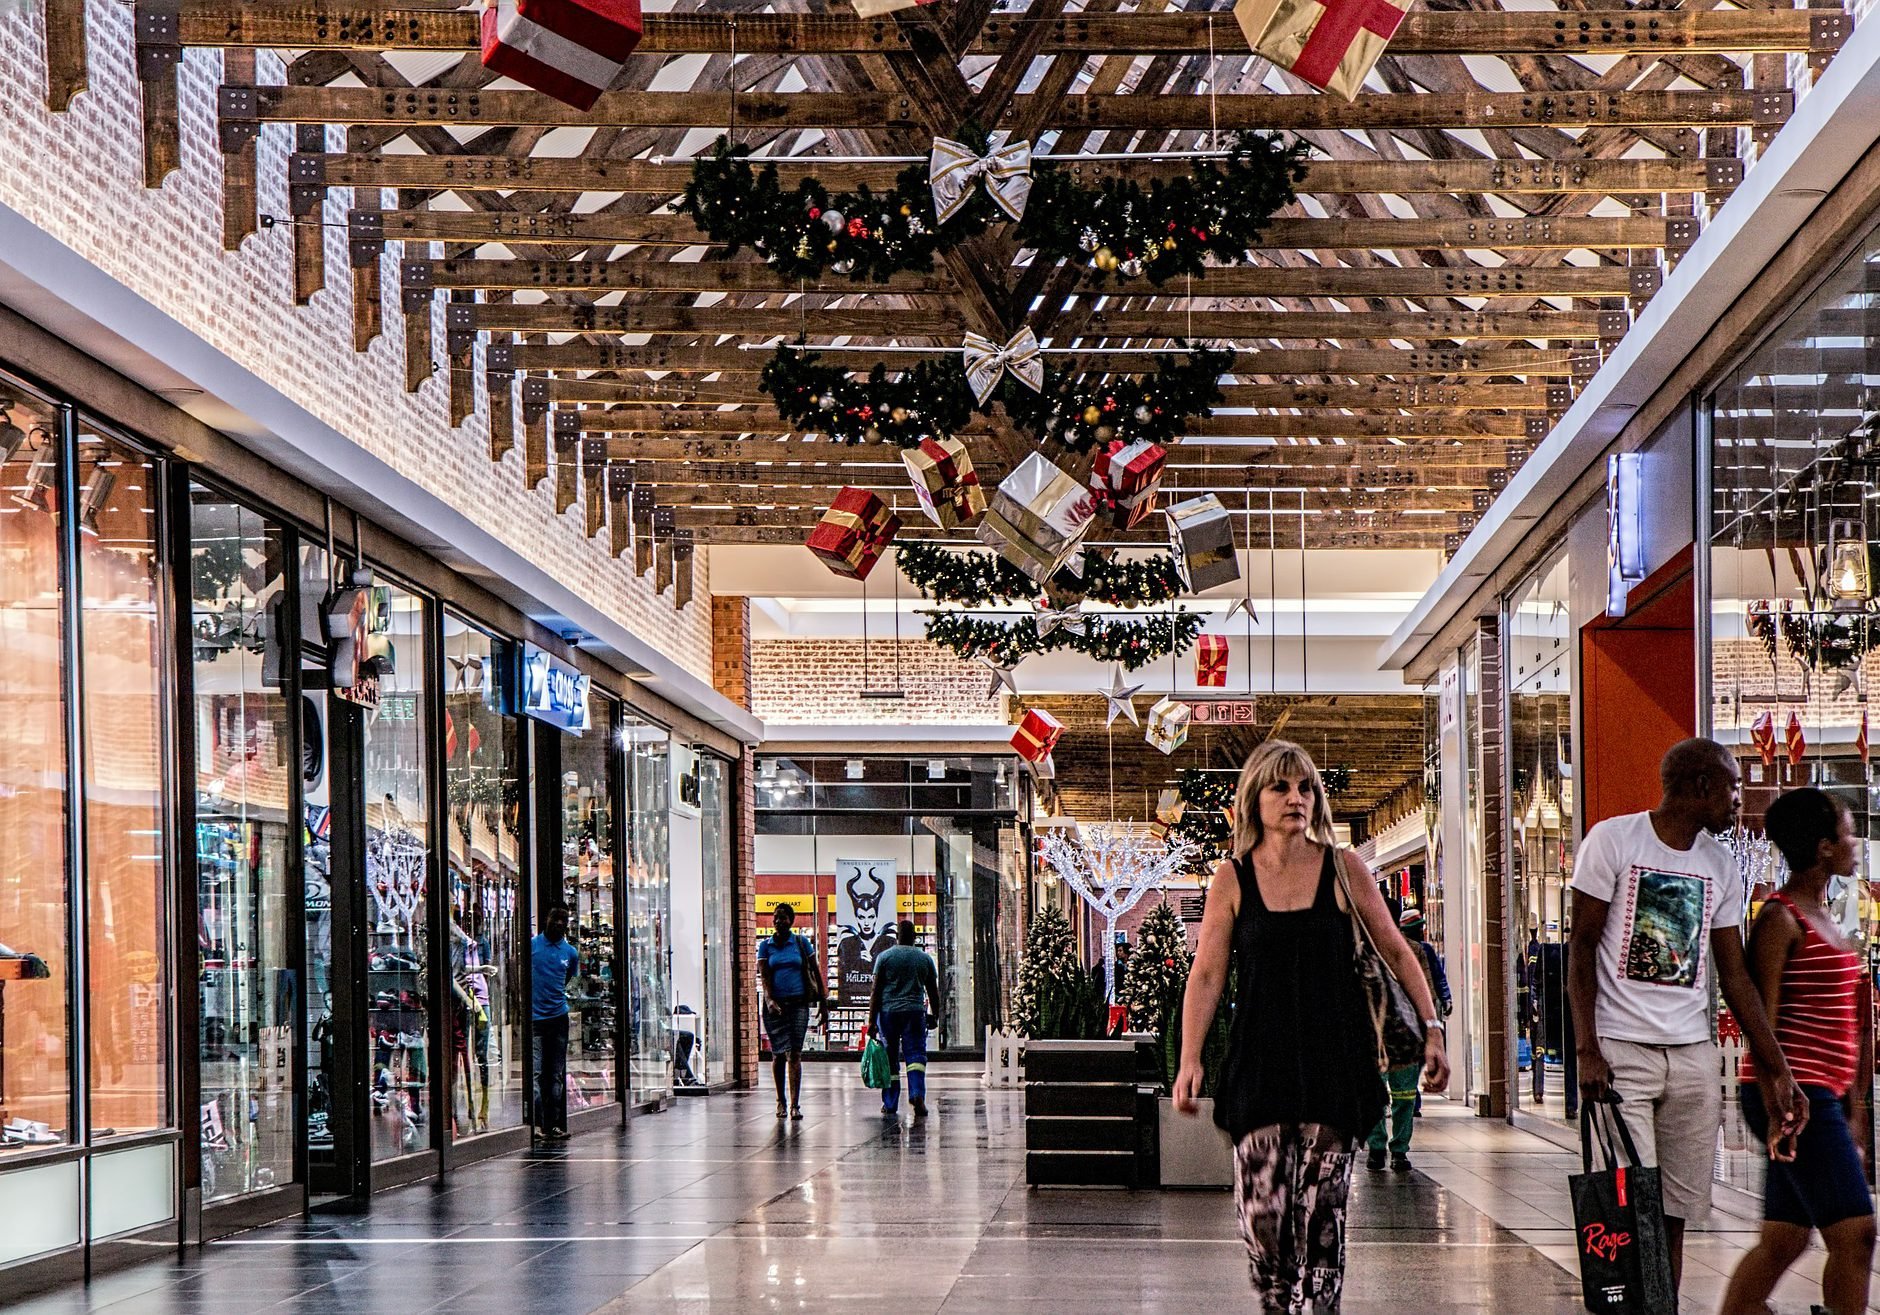 shopping-mall-522619_1920